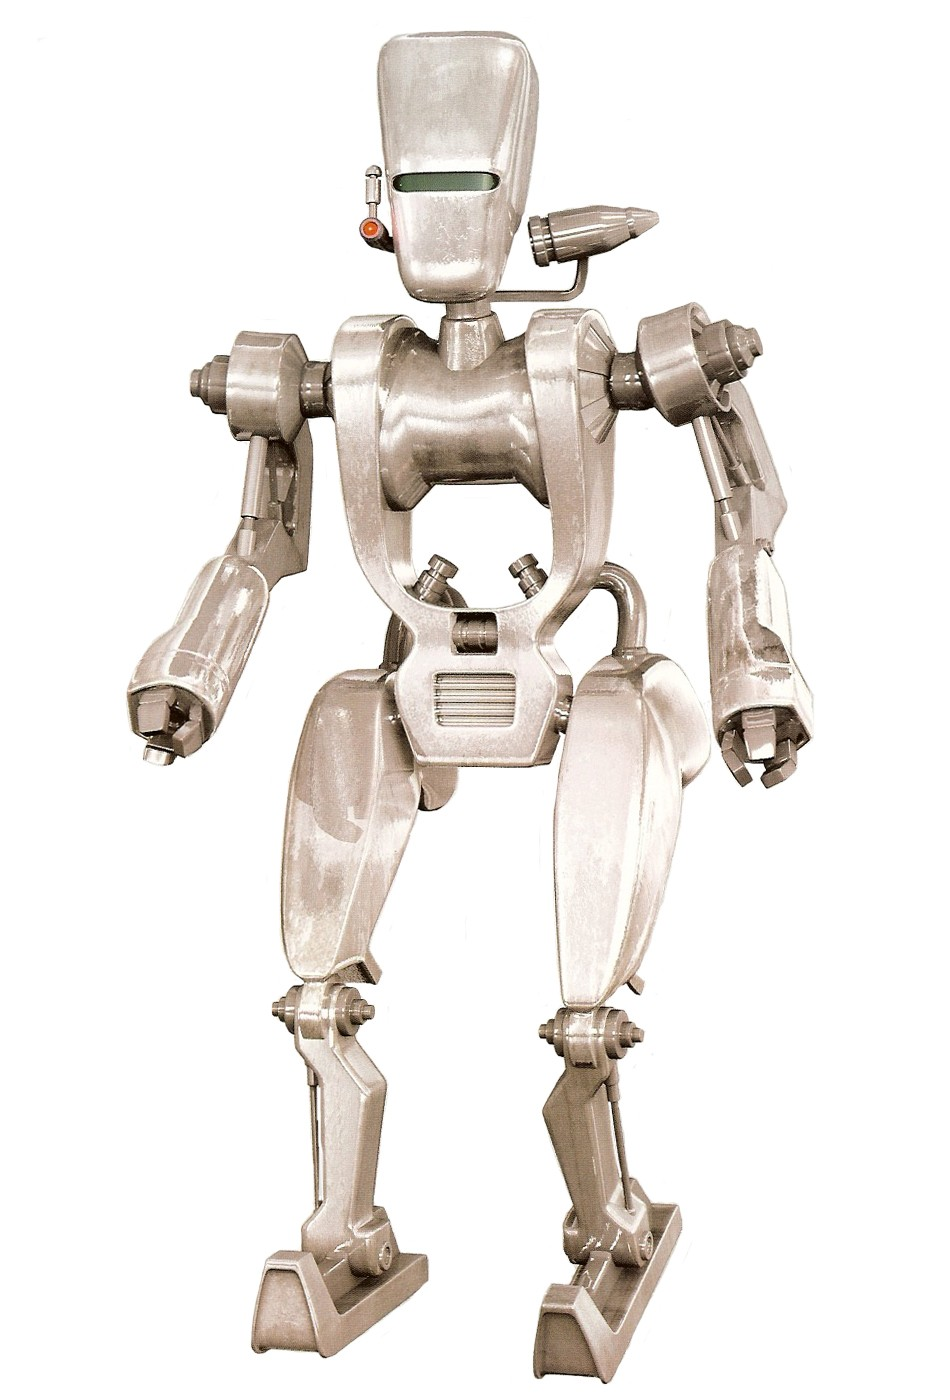 Industrial Automaton ASP-series Labor droid